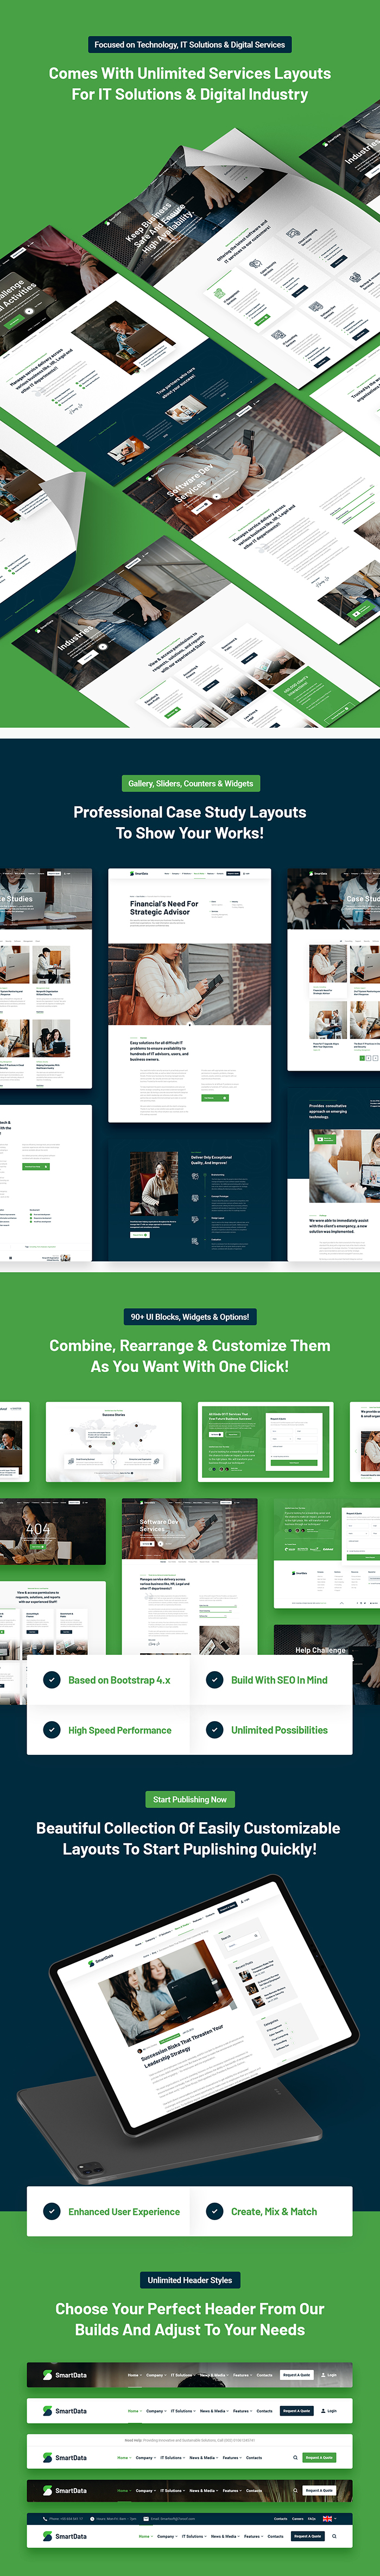 Smartdata - IT Solutions & Services HTML5 Template - 6